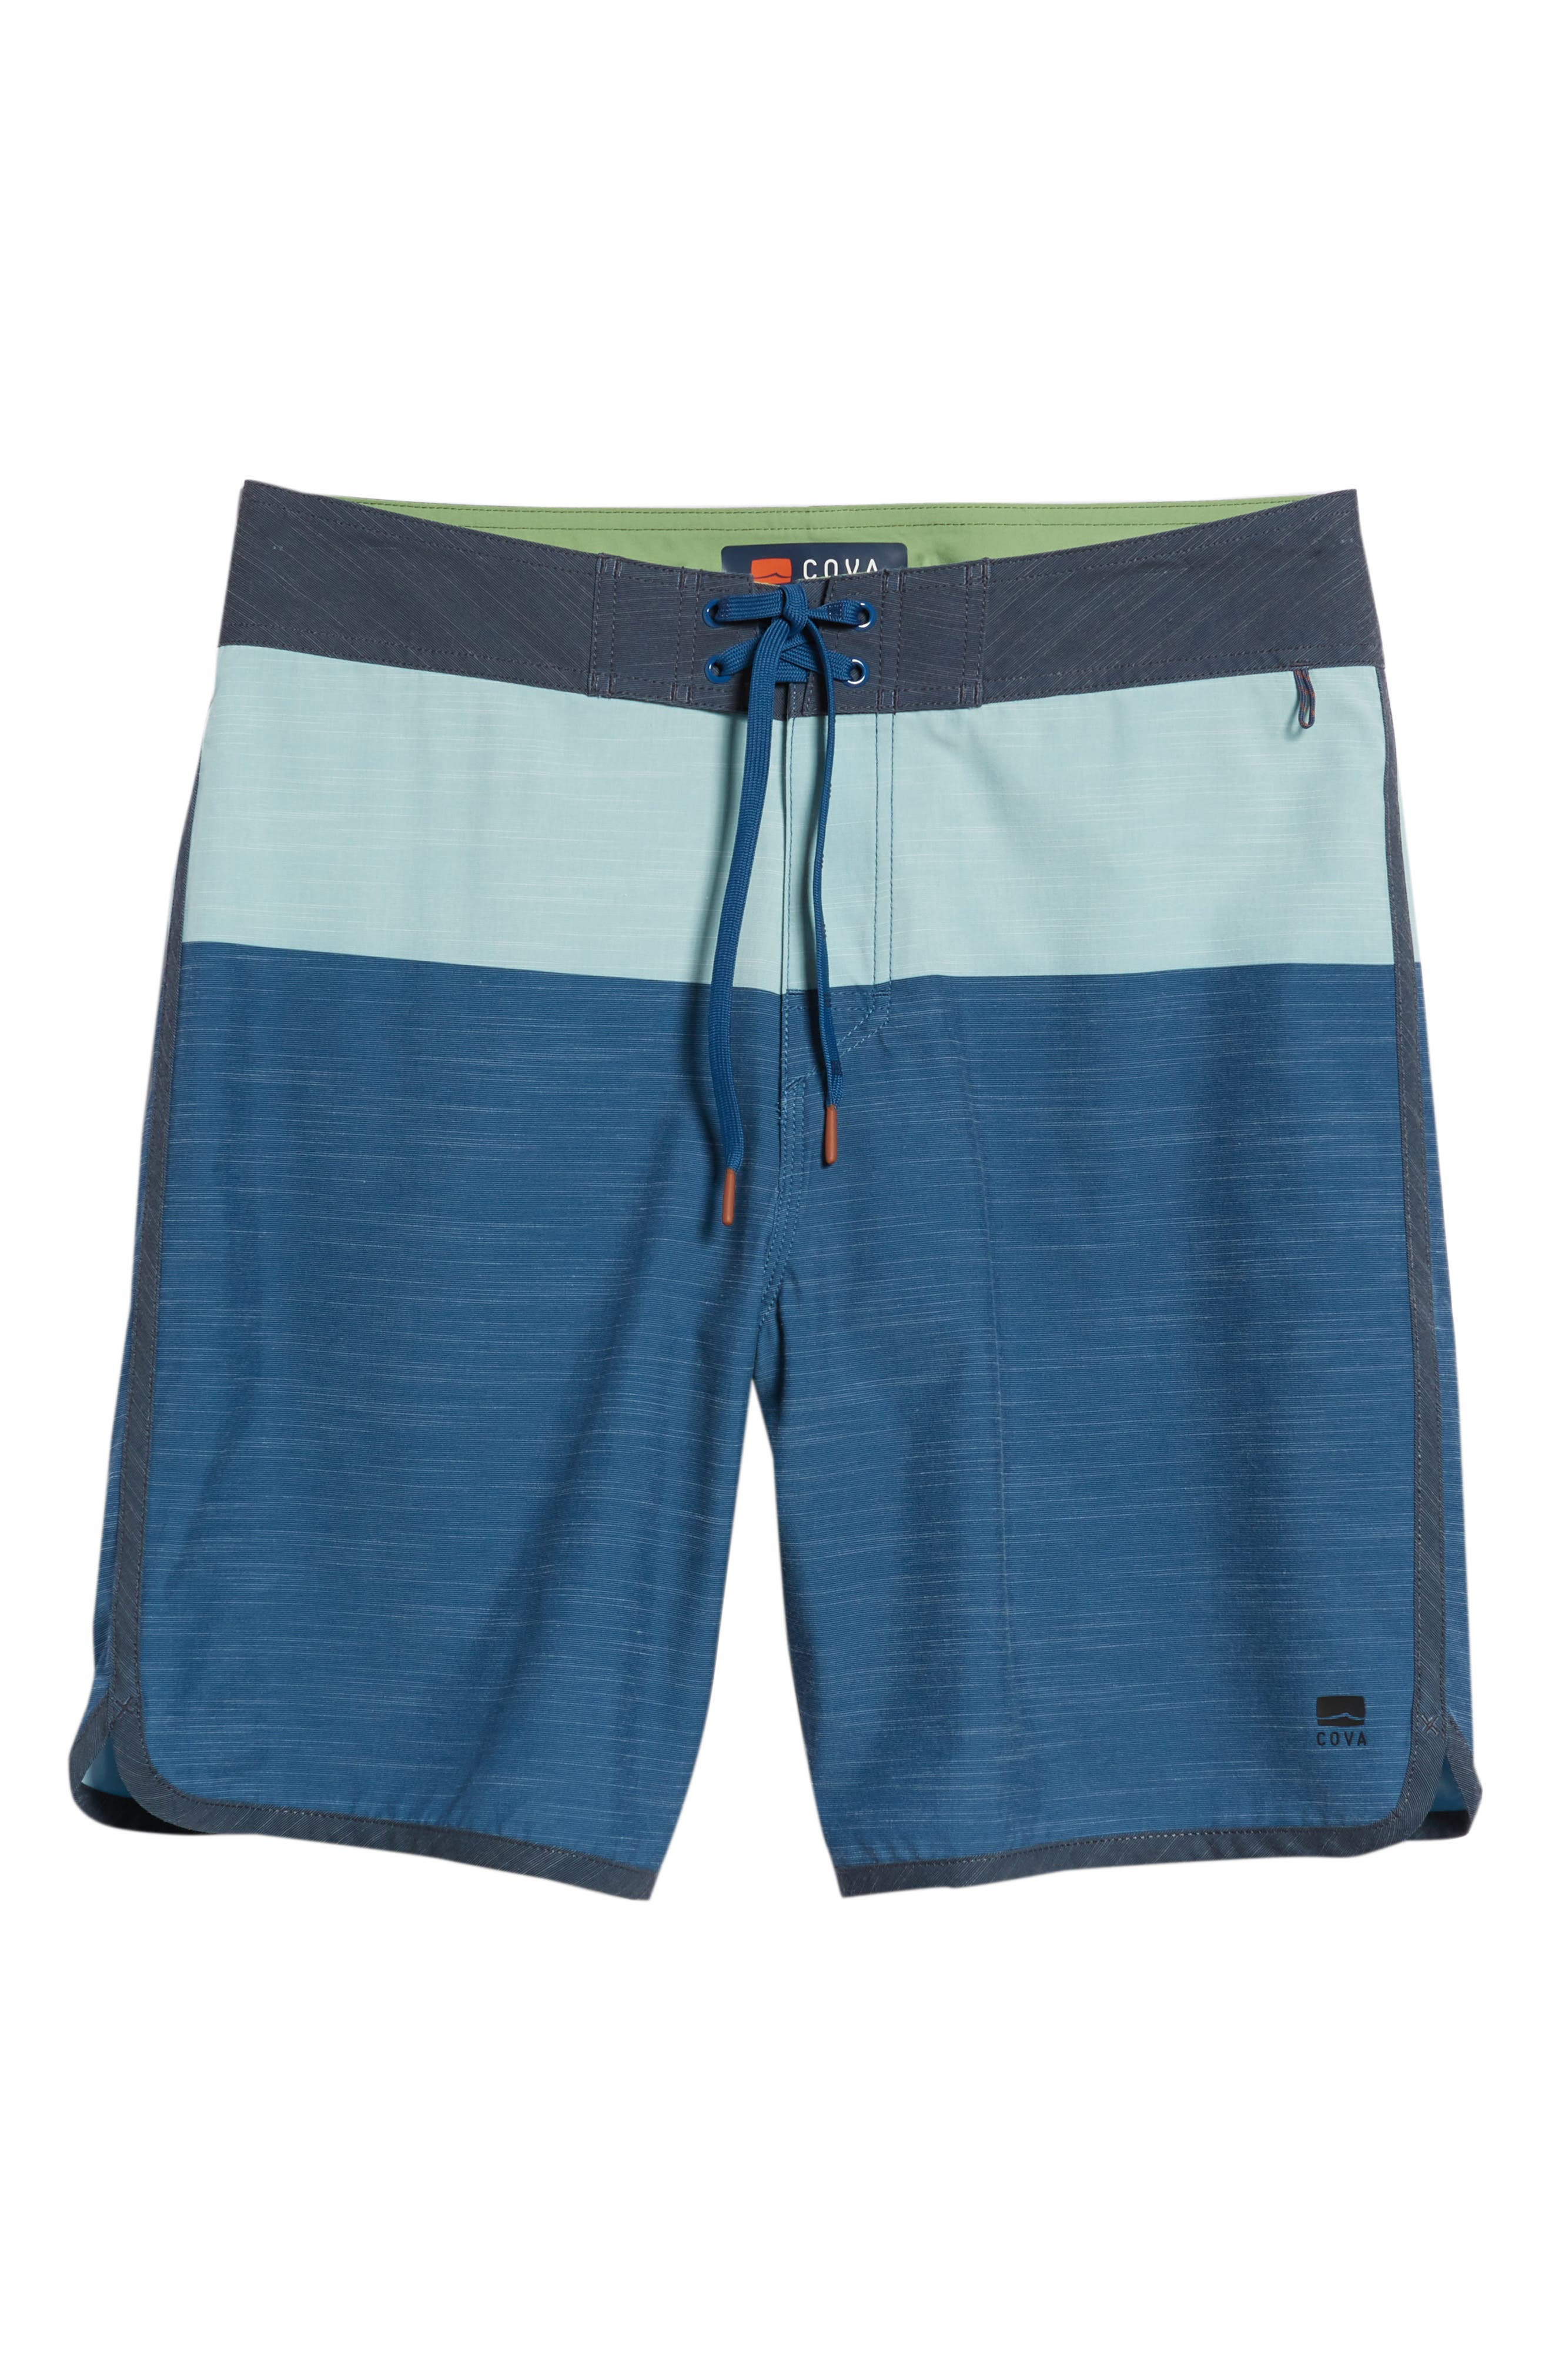 Beachcomber Board Shorts,                             Alternate thumbnail 6, color,                             423